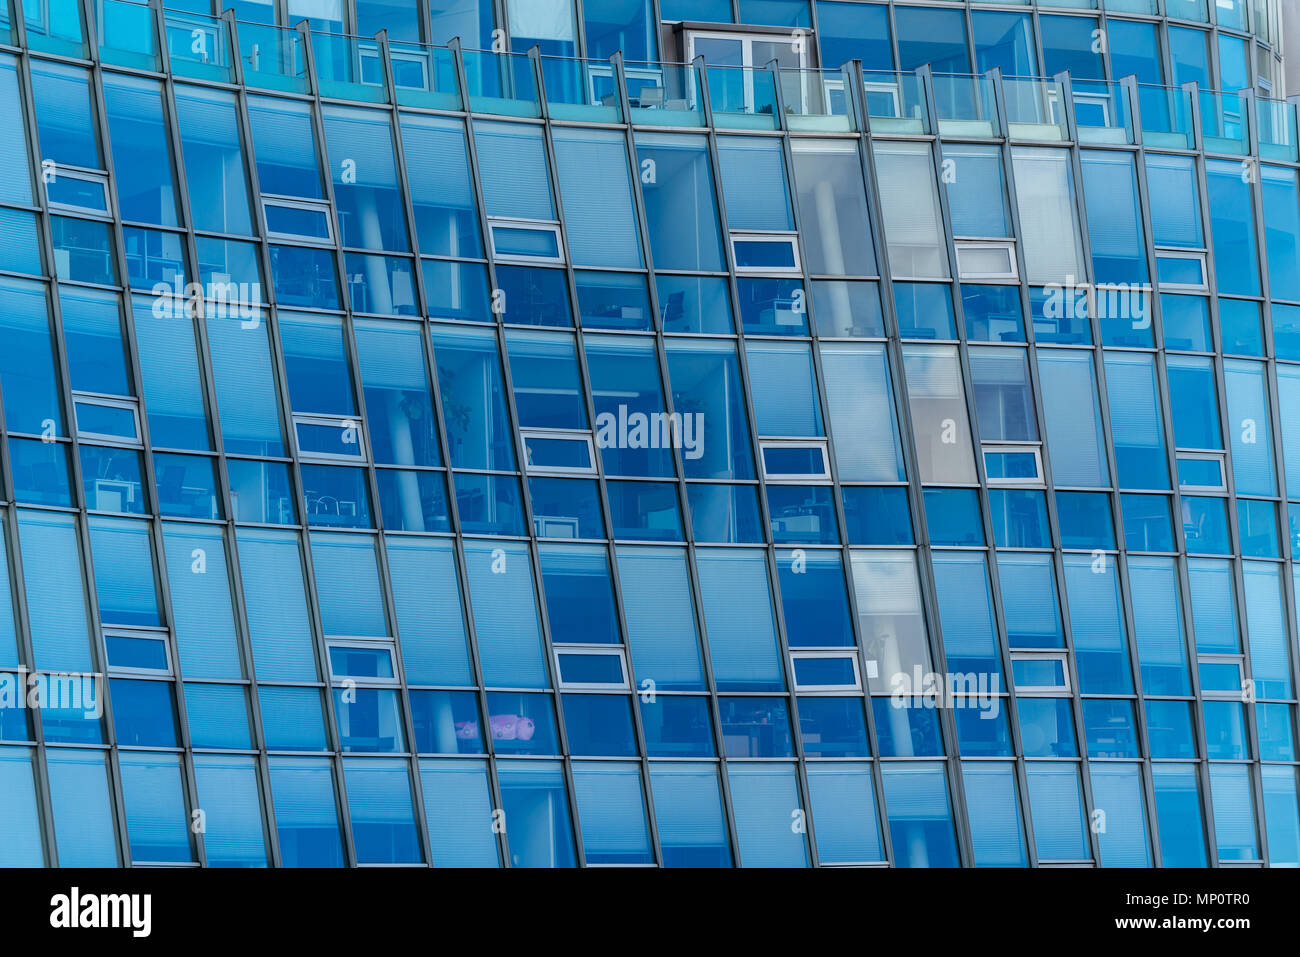 """Glass facade of the """"Hörn Campus"""", an office building, at the very end of the Kiel Fjord, Kieler Foerde,  Kiel, Schleswig-Holstein, Germany Stock Photo"""